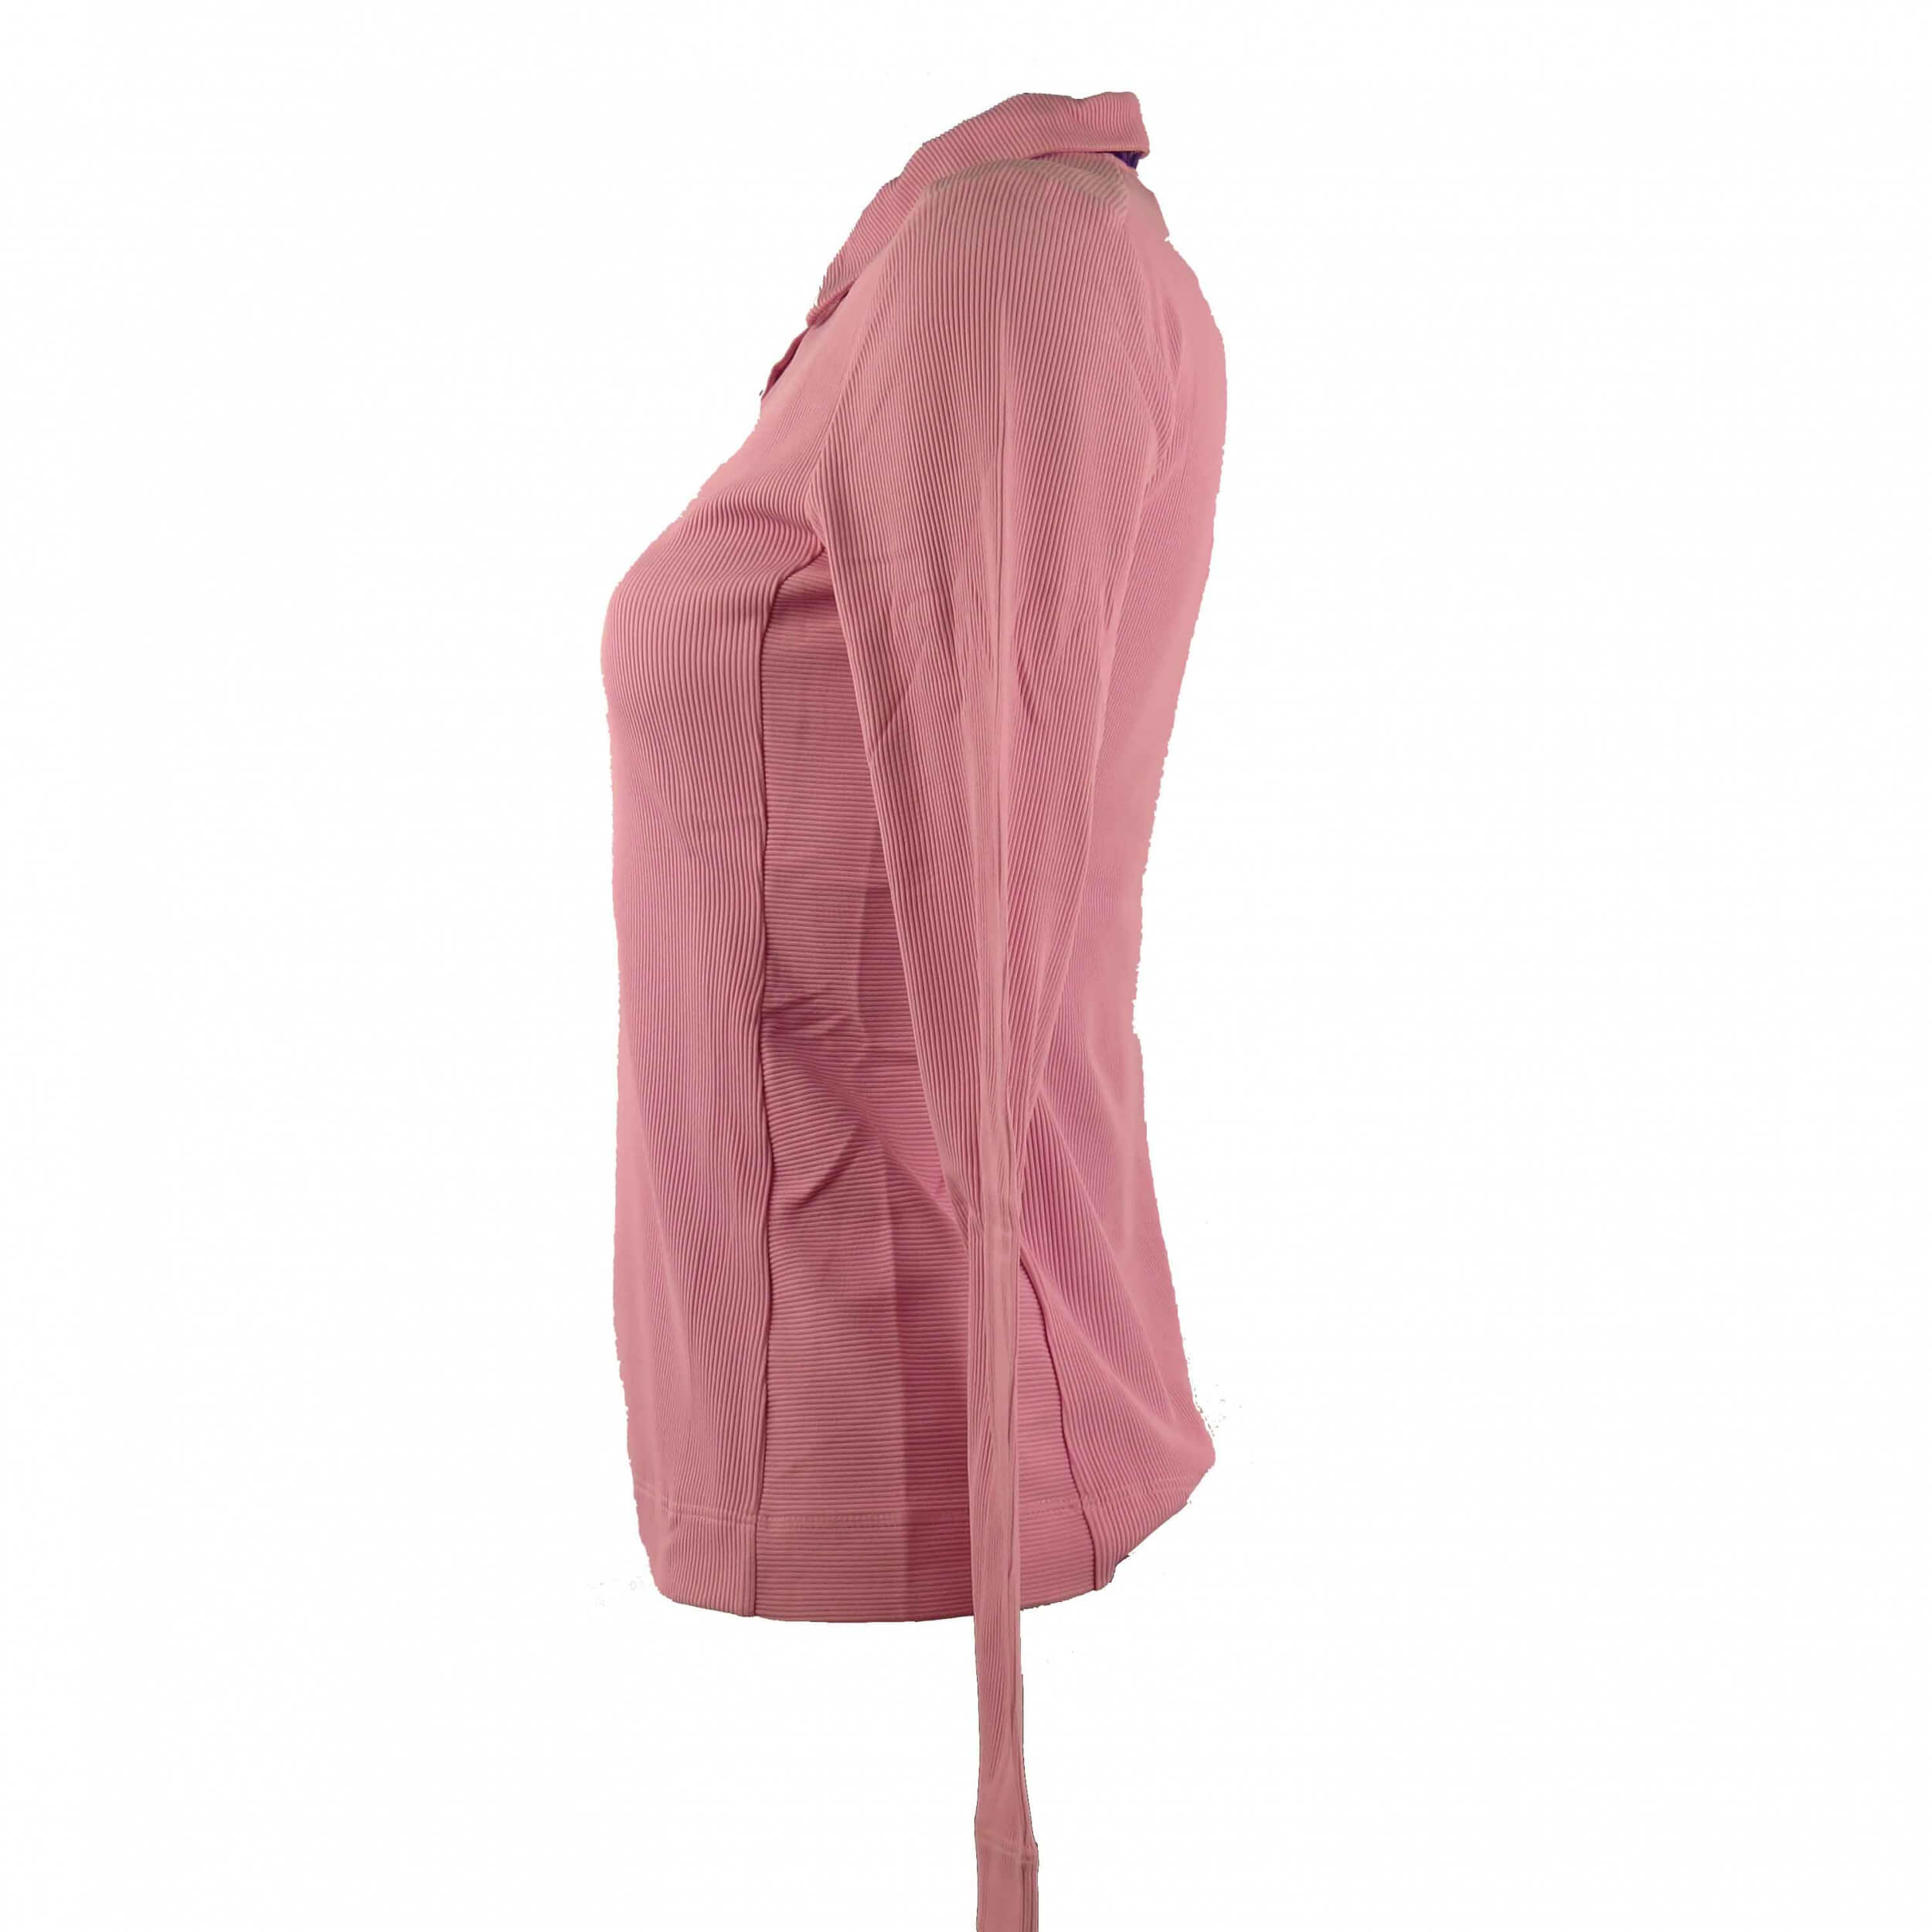 Chervo Damen Polo lang Arm PRO THERM Areo rosa 769